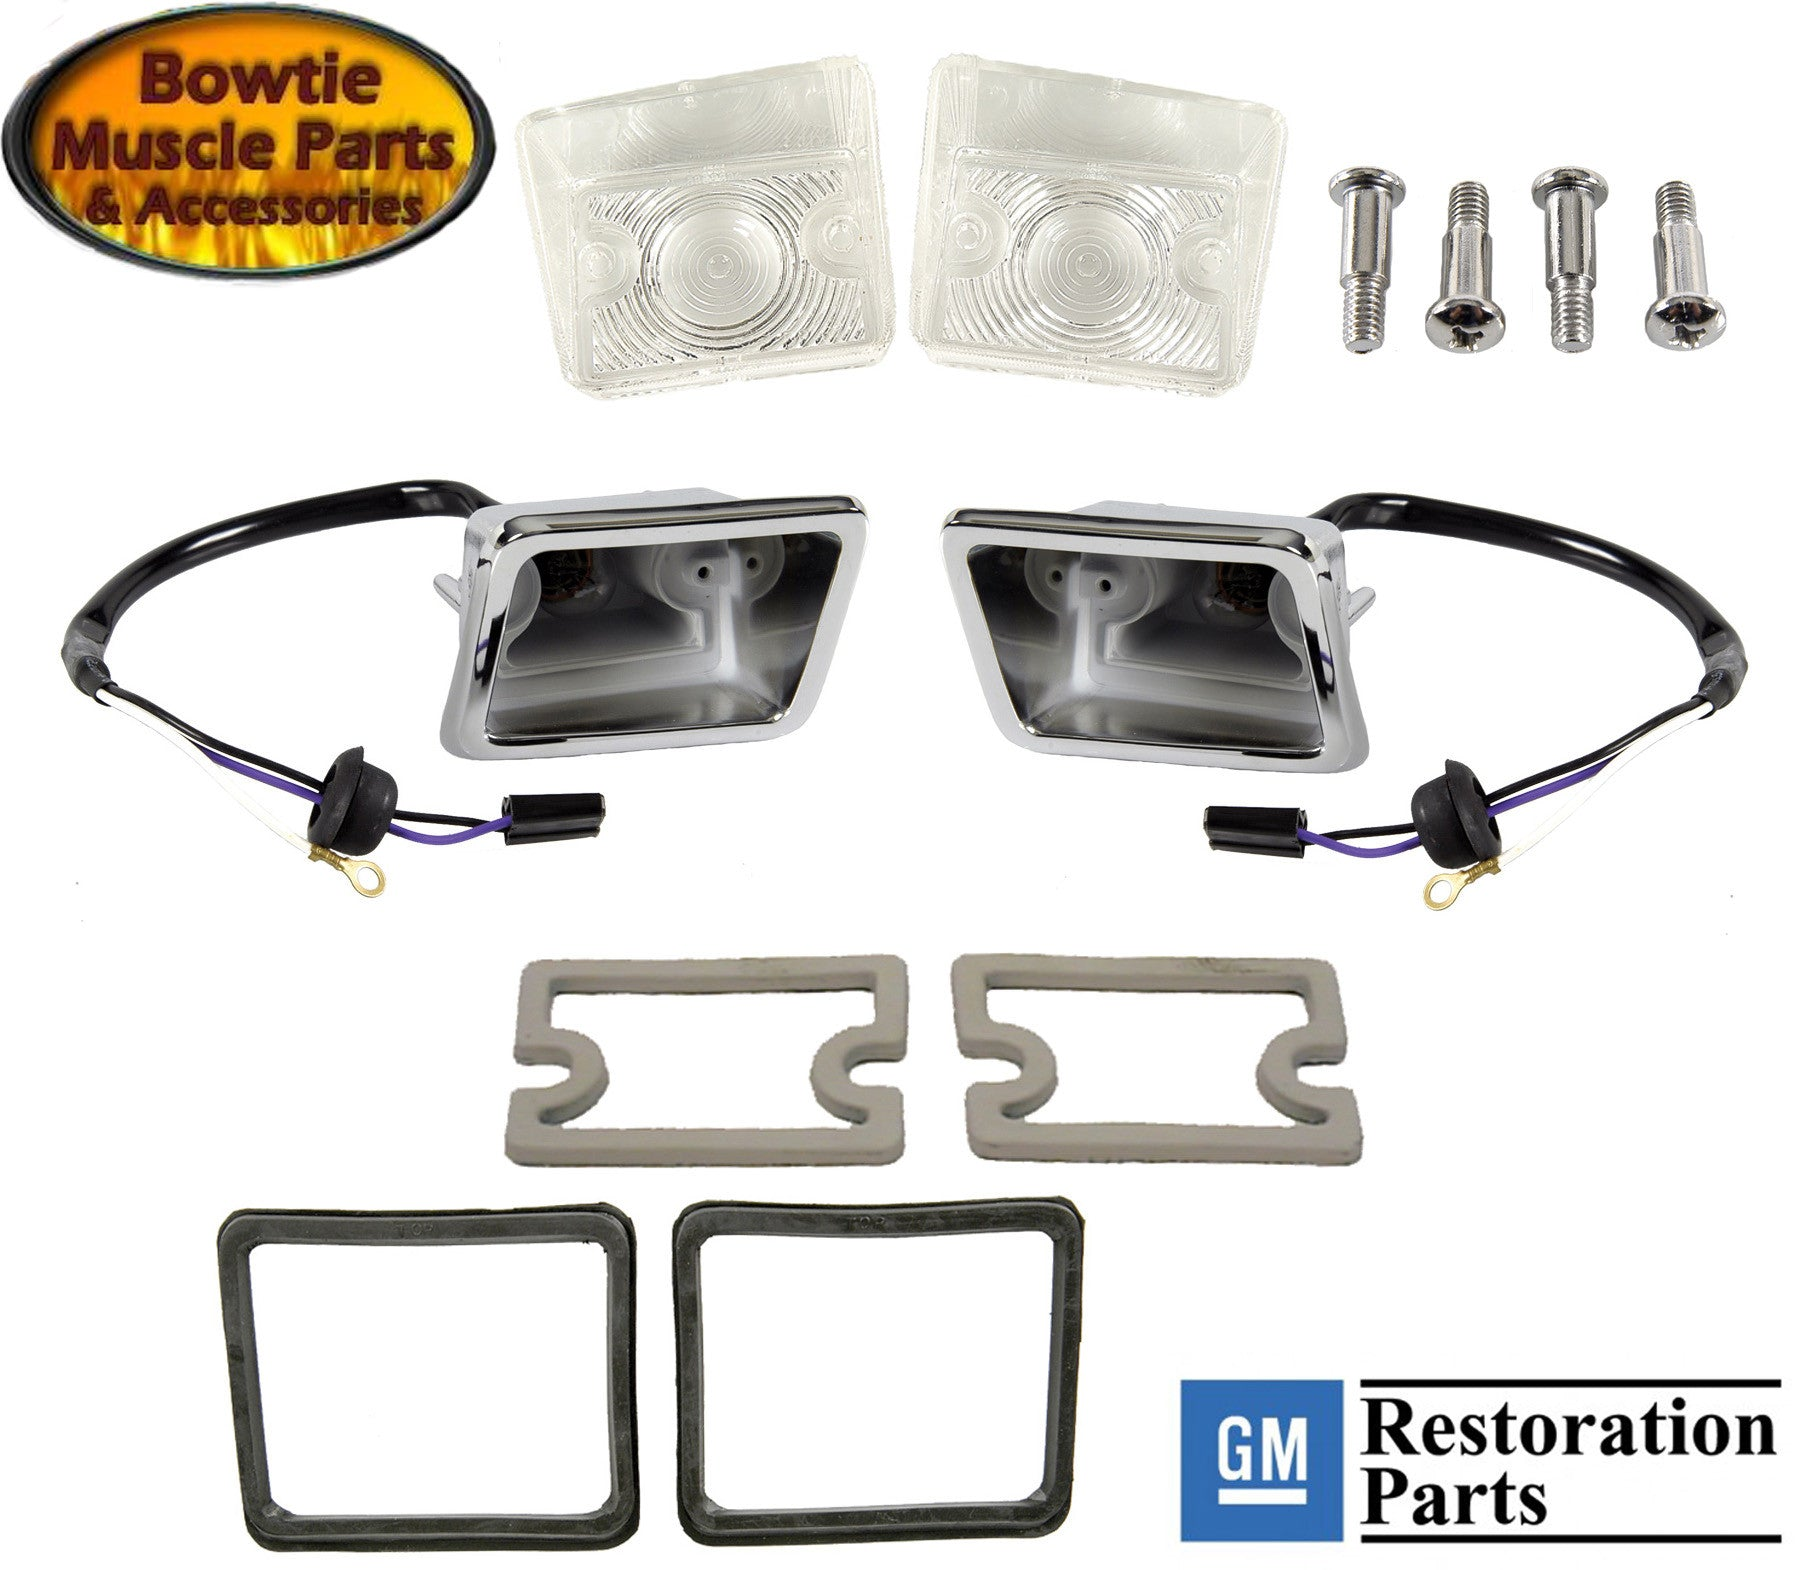 67 CAMARO rs RALLYSPORT PARKING LAMP HOUSING LENS GASKET SEAL KIT